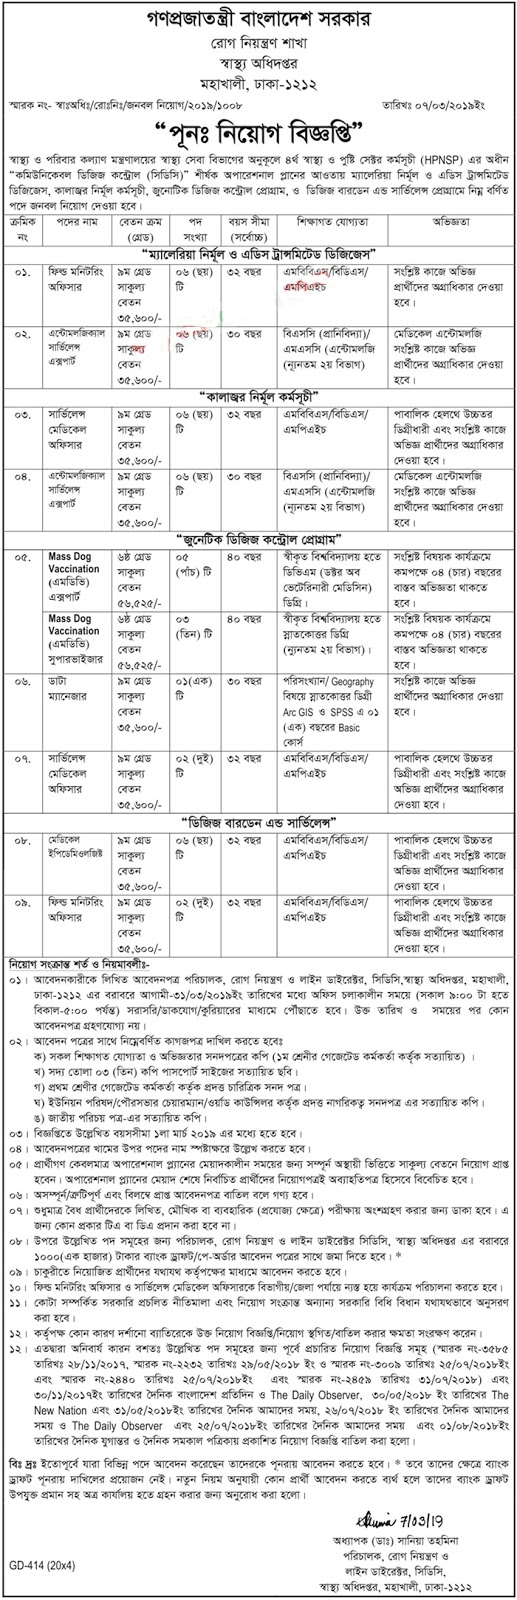 Directorate of Health Services Job Circular 2019